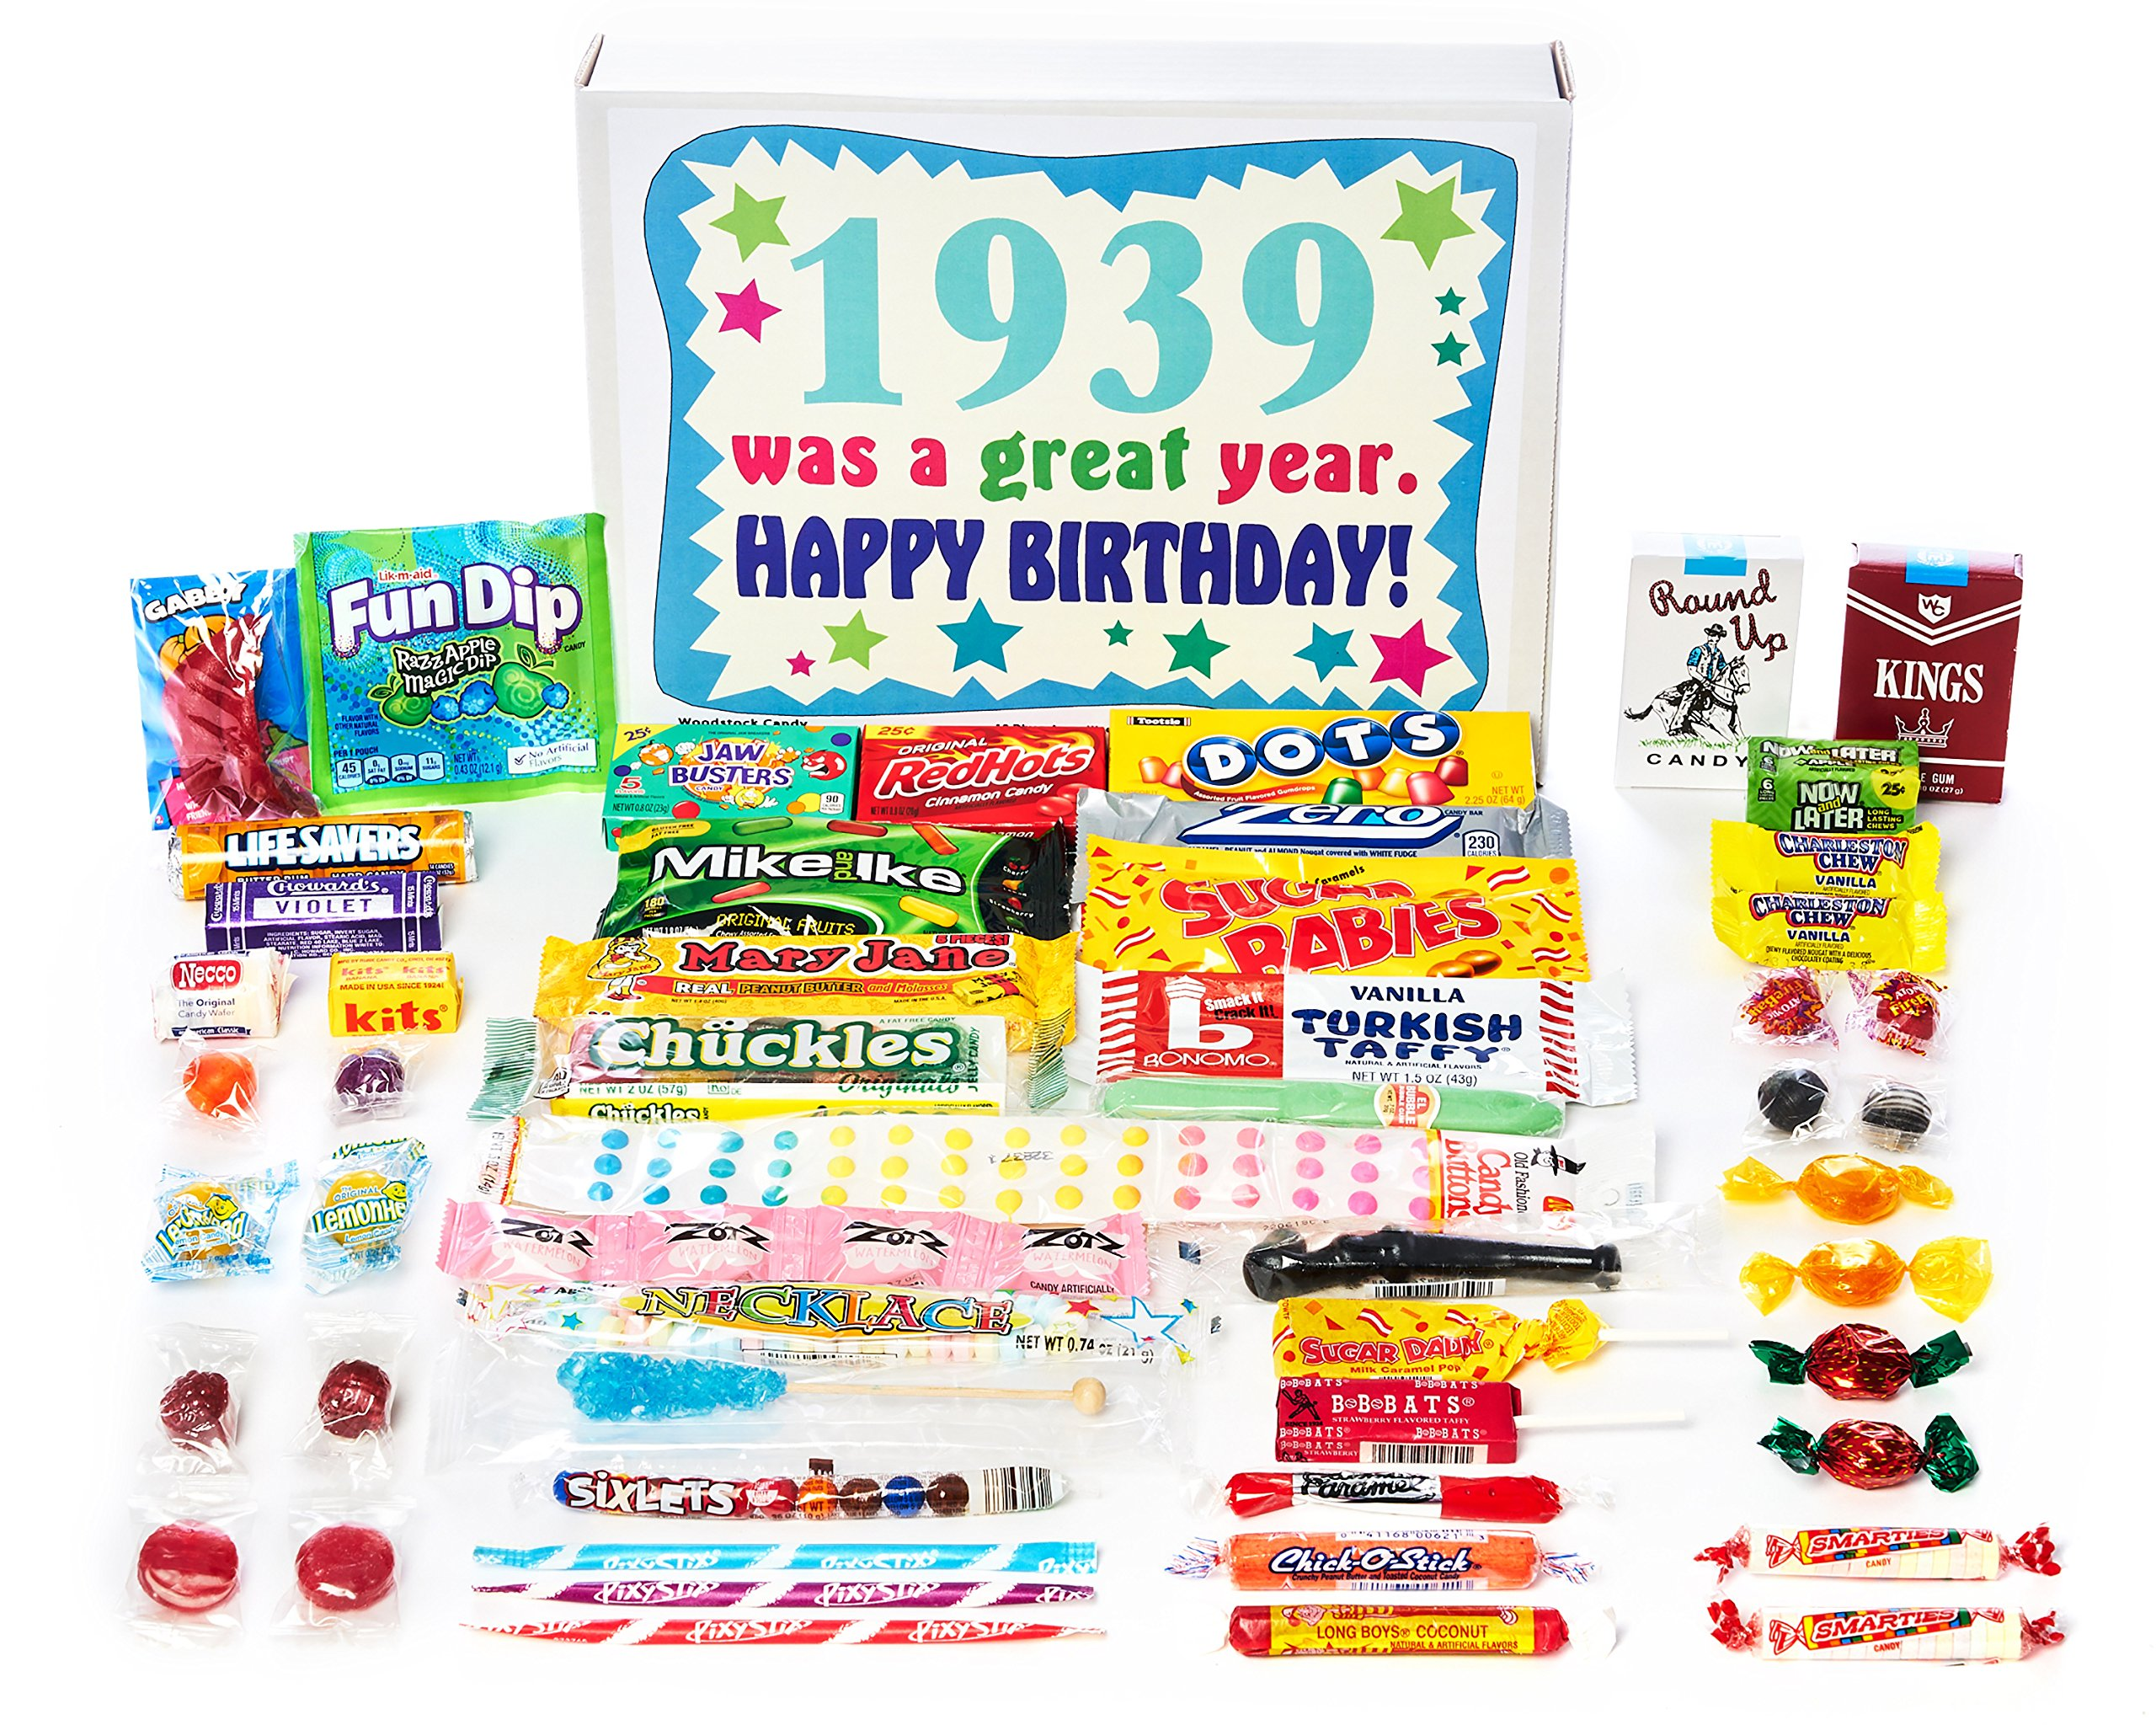 Woodstock Candy ~ 1939 80th Birthday Gift Box Nostalgic Retro Candy from Childhood for 80 Year Old Man or Woman Born 1939